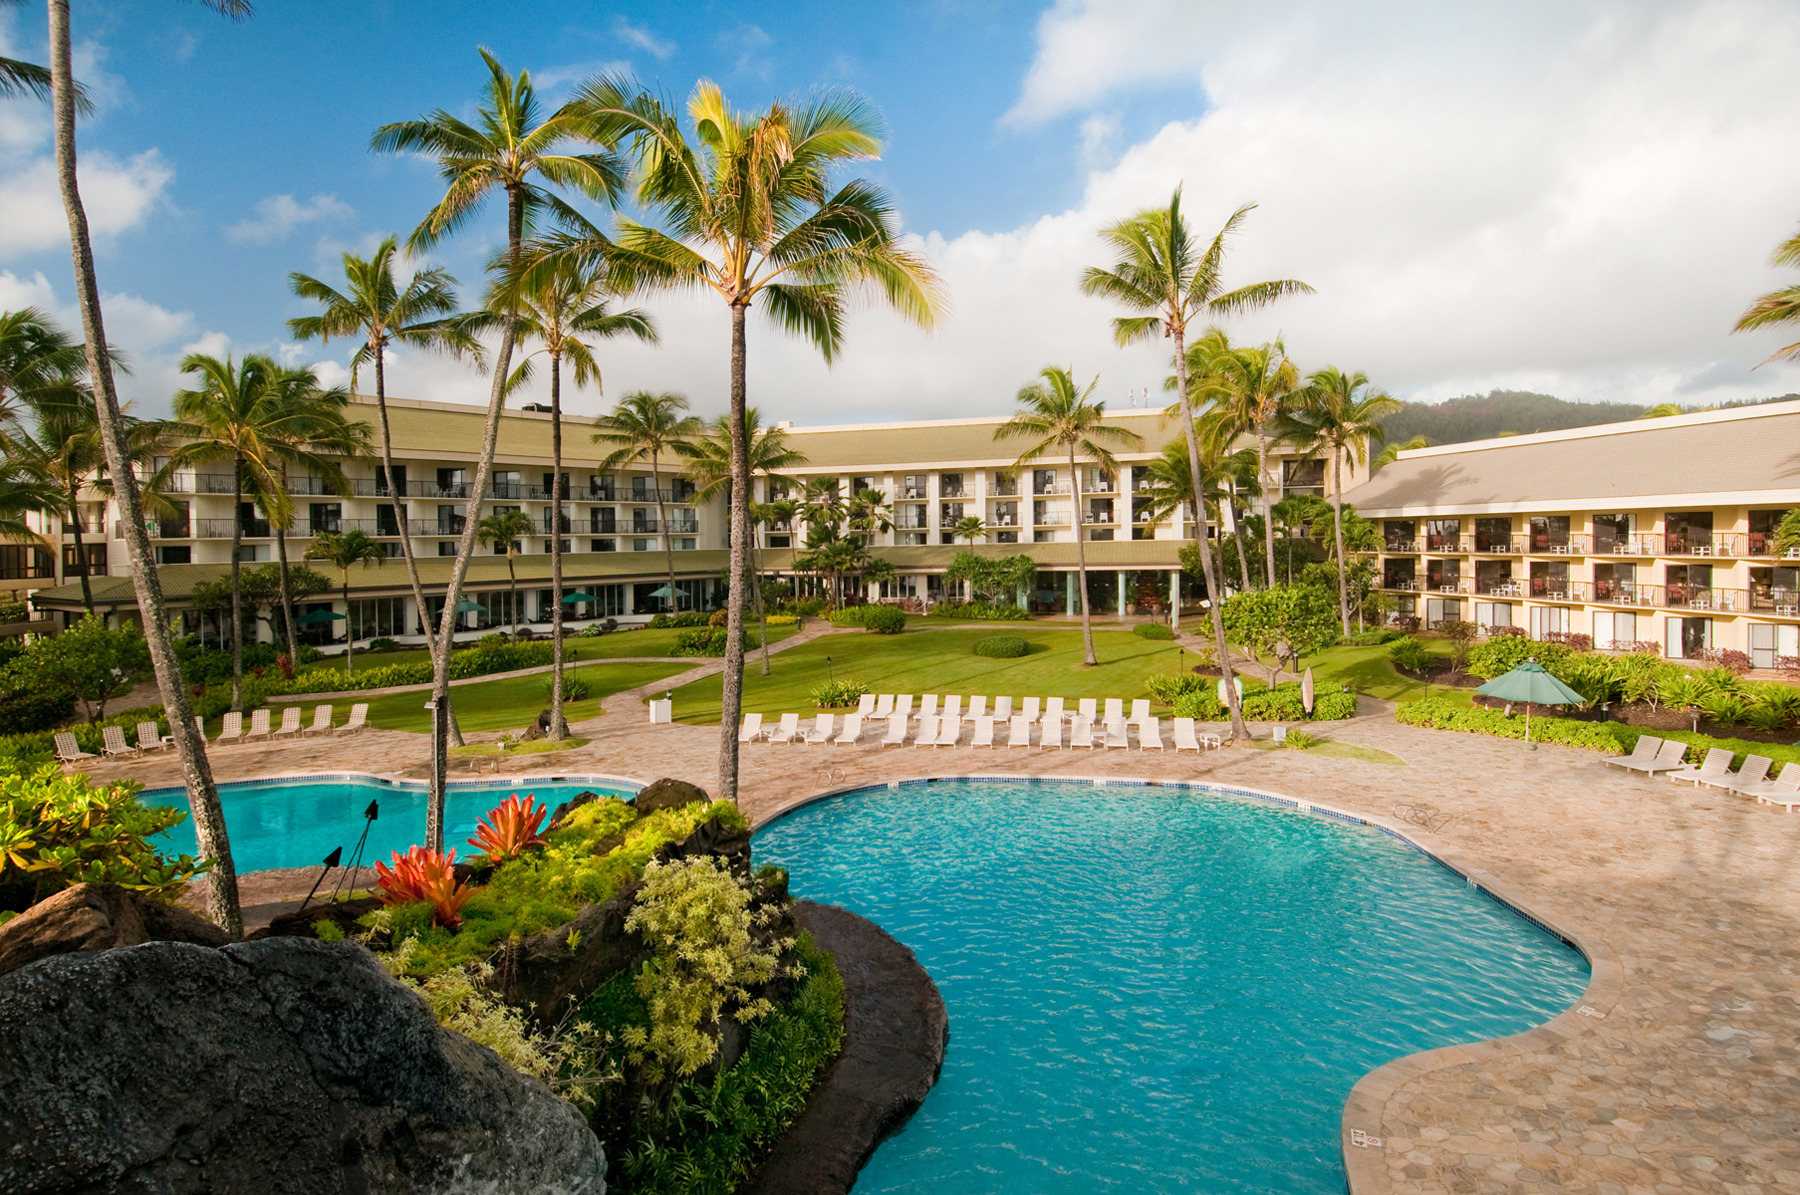 The Kauai Beach Resort